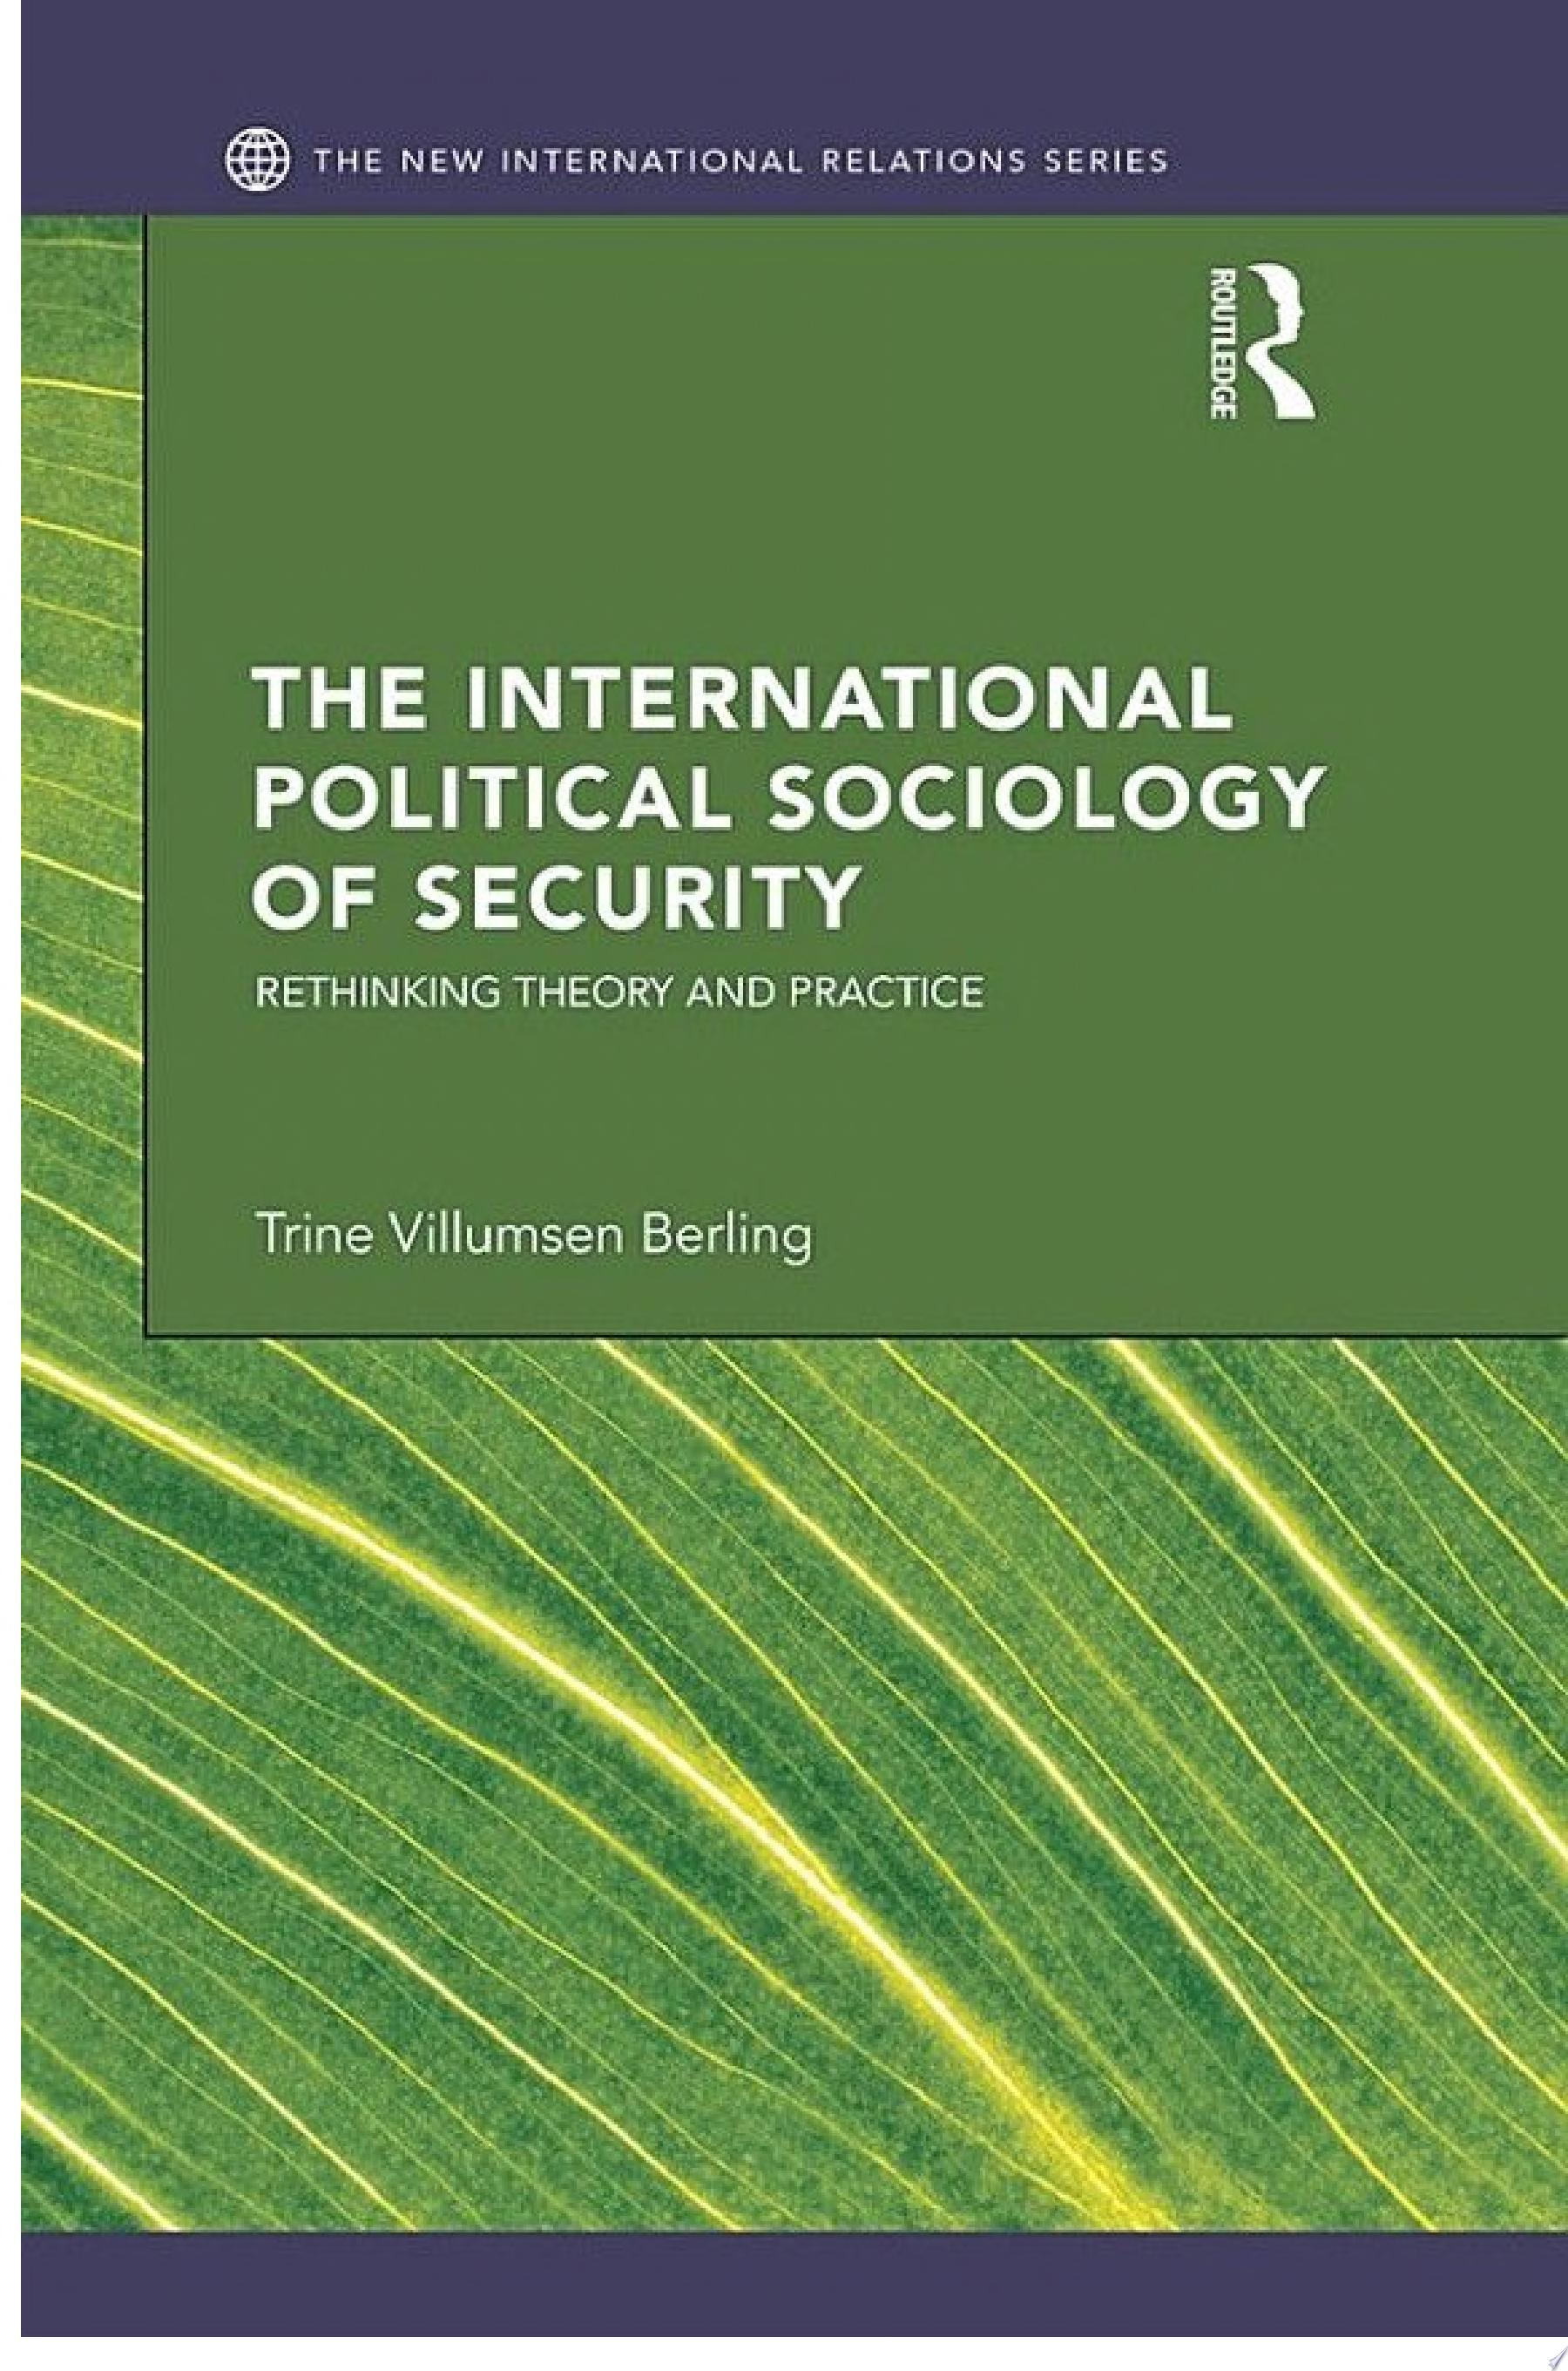 The International Political Sociology of Security